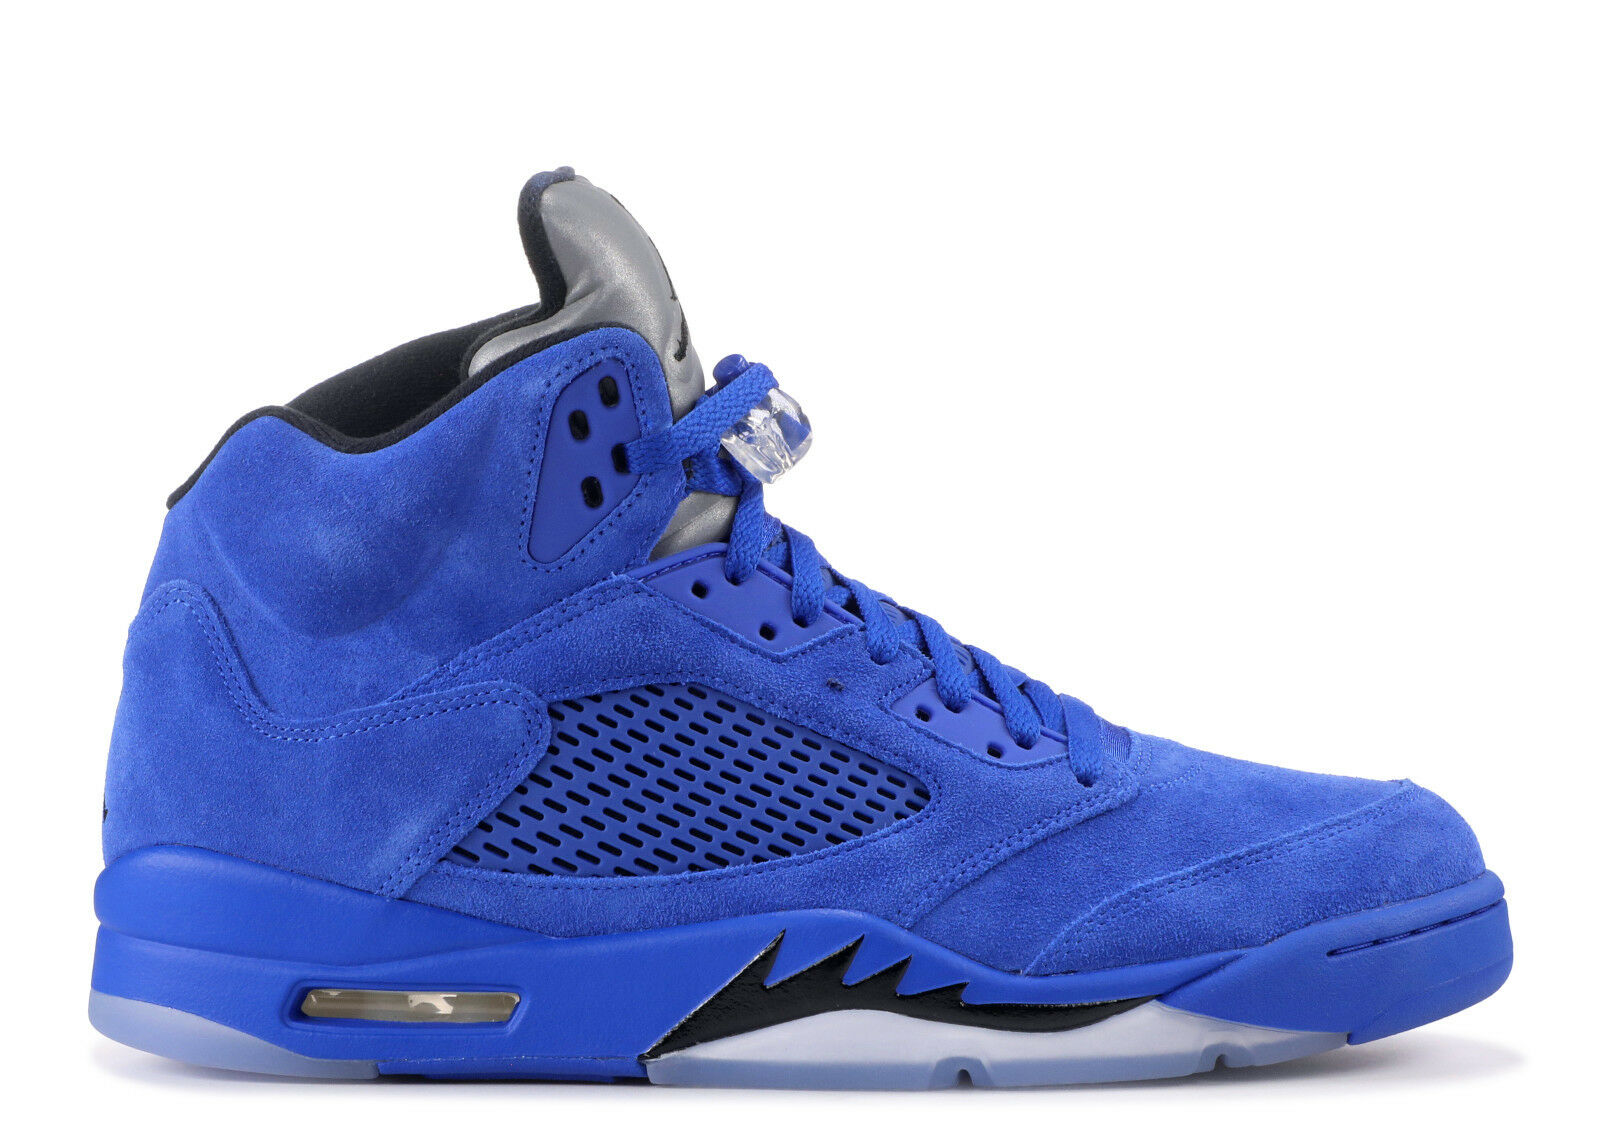 Air Jordan V Retro 5 bluee Suede Game Royal 136027-401 Size 8-13